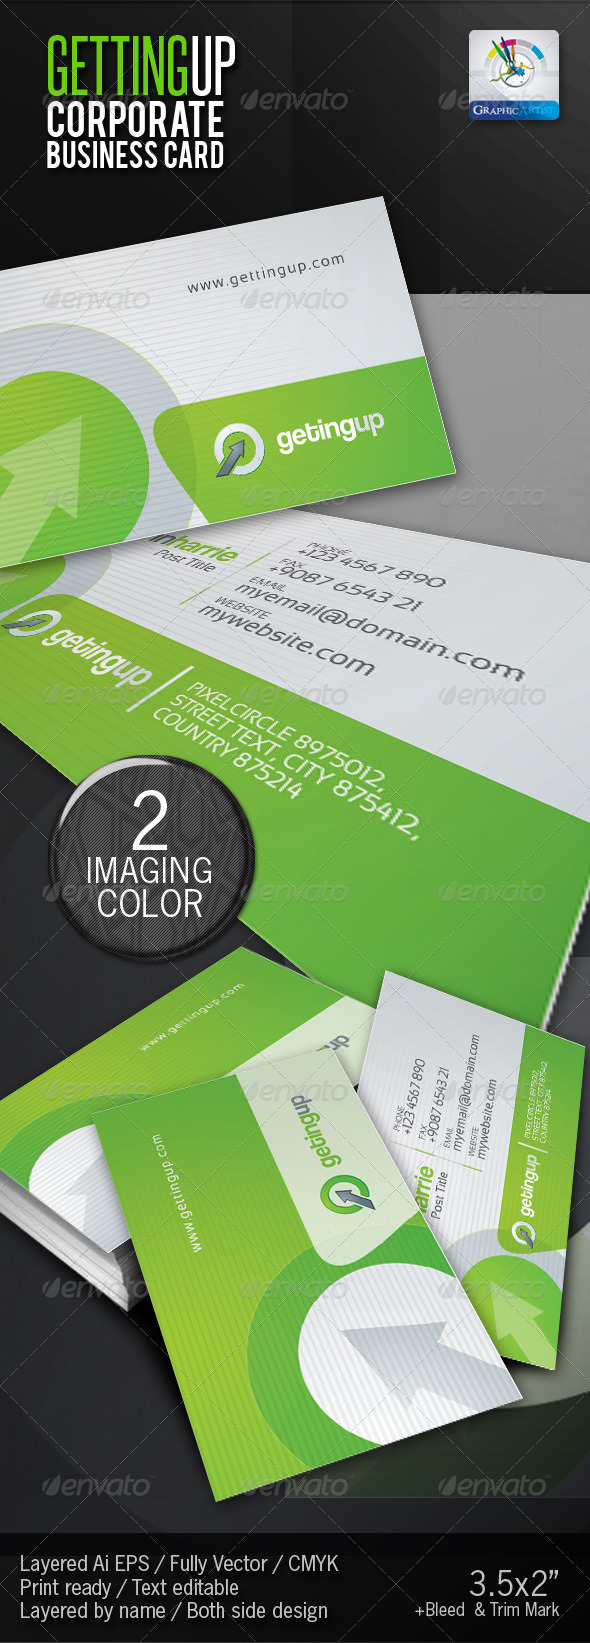 GettingUp Corporate Business Card - Corporate Business Cards